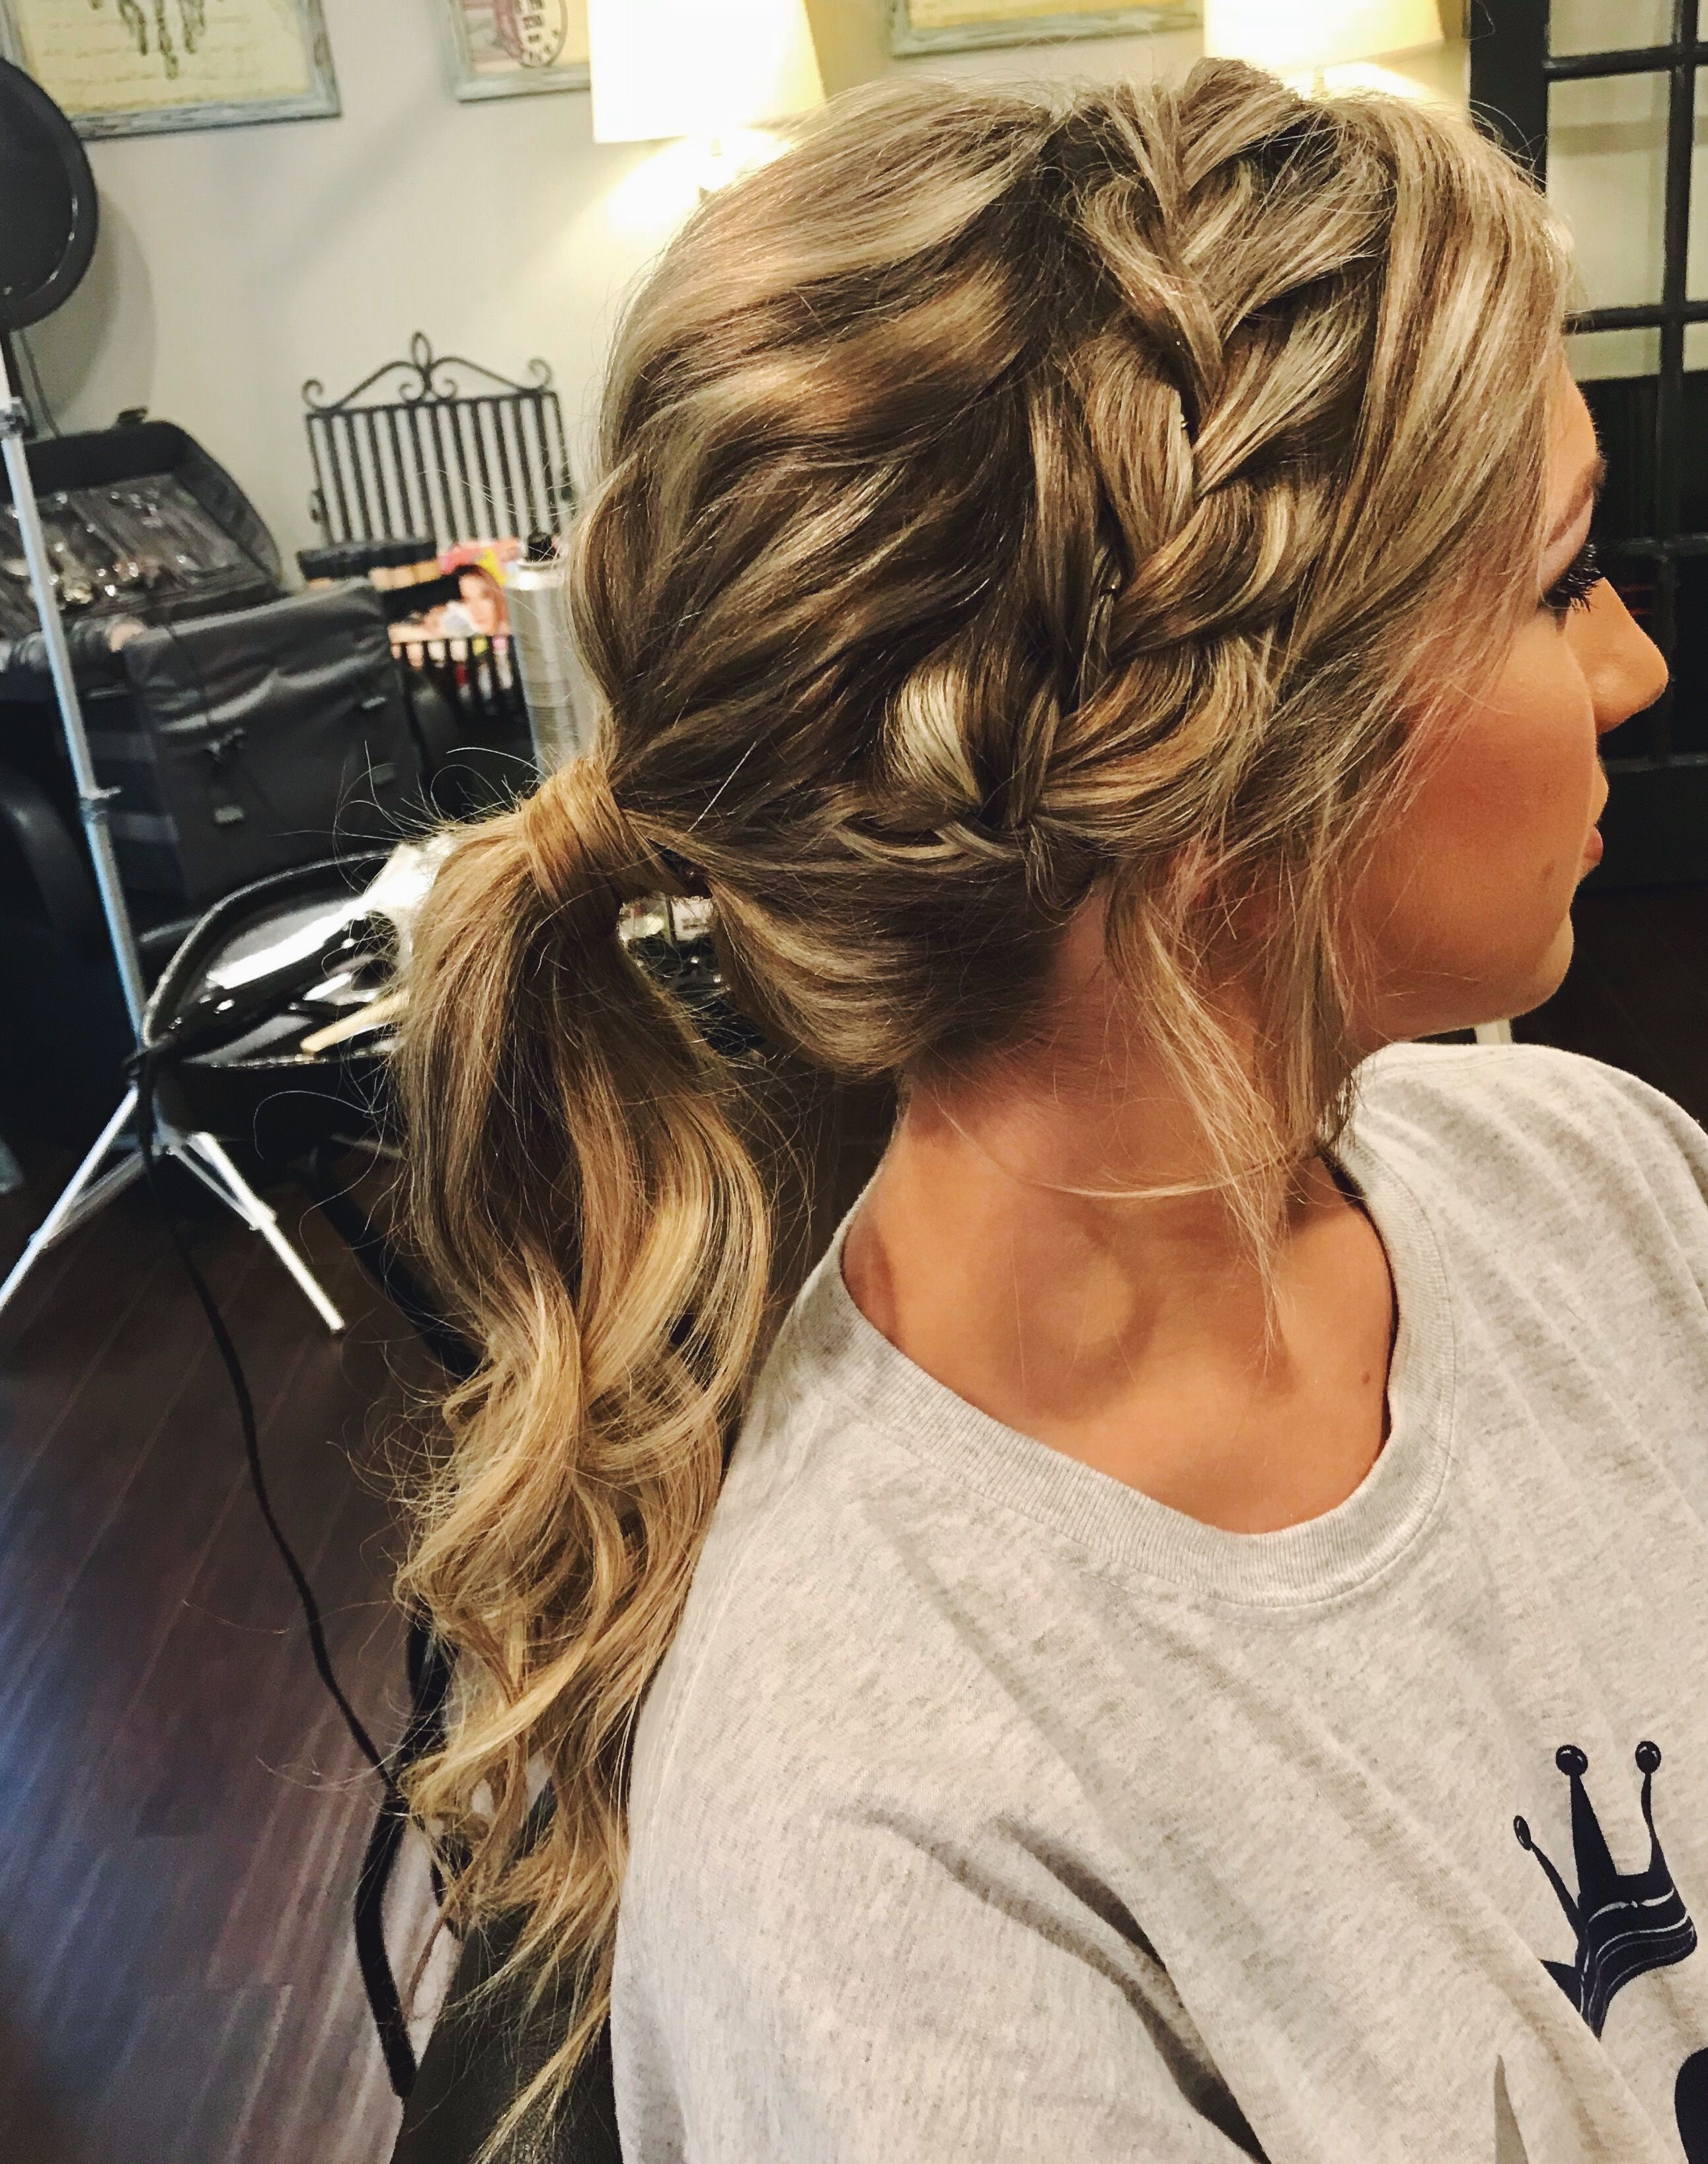 Messy Bun For Prom Hairstyle For Fashionable Textured Side Braid And Ponytail Prom Hairstyles (View 11 of 20)